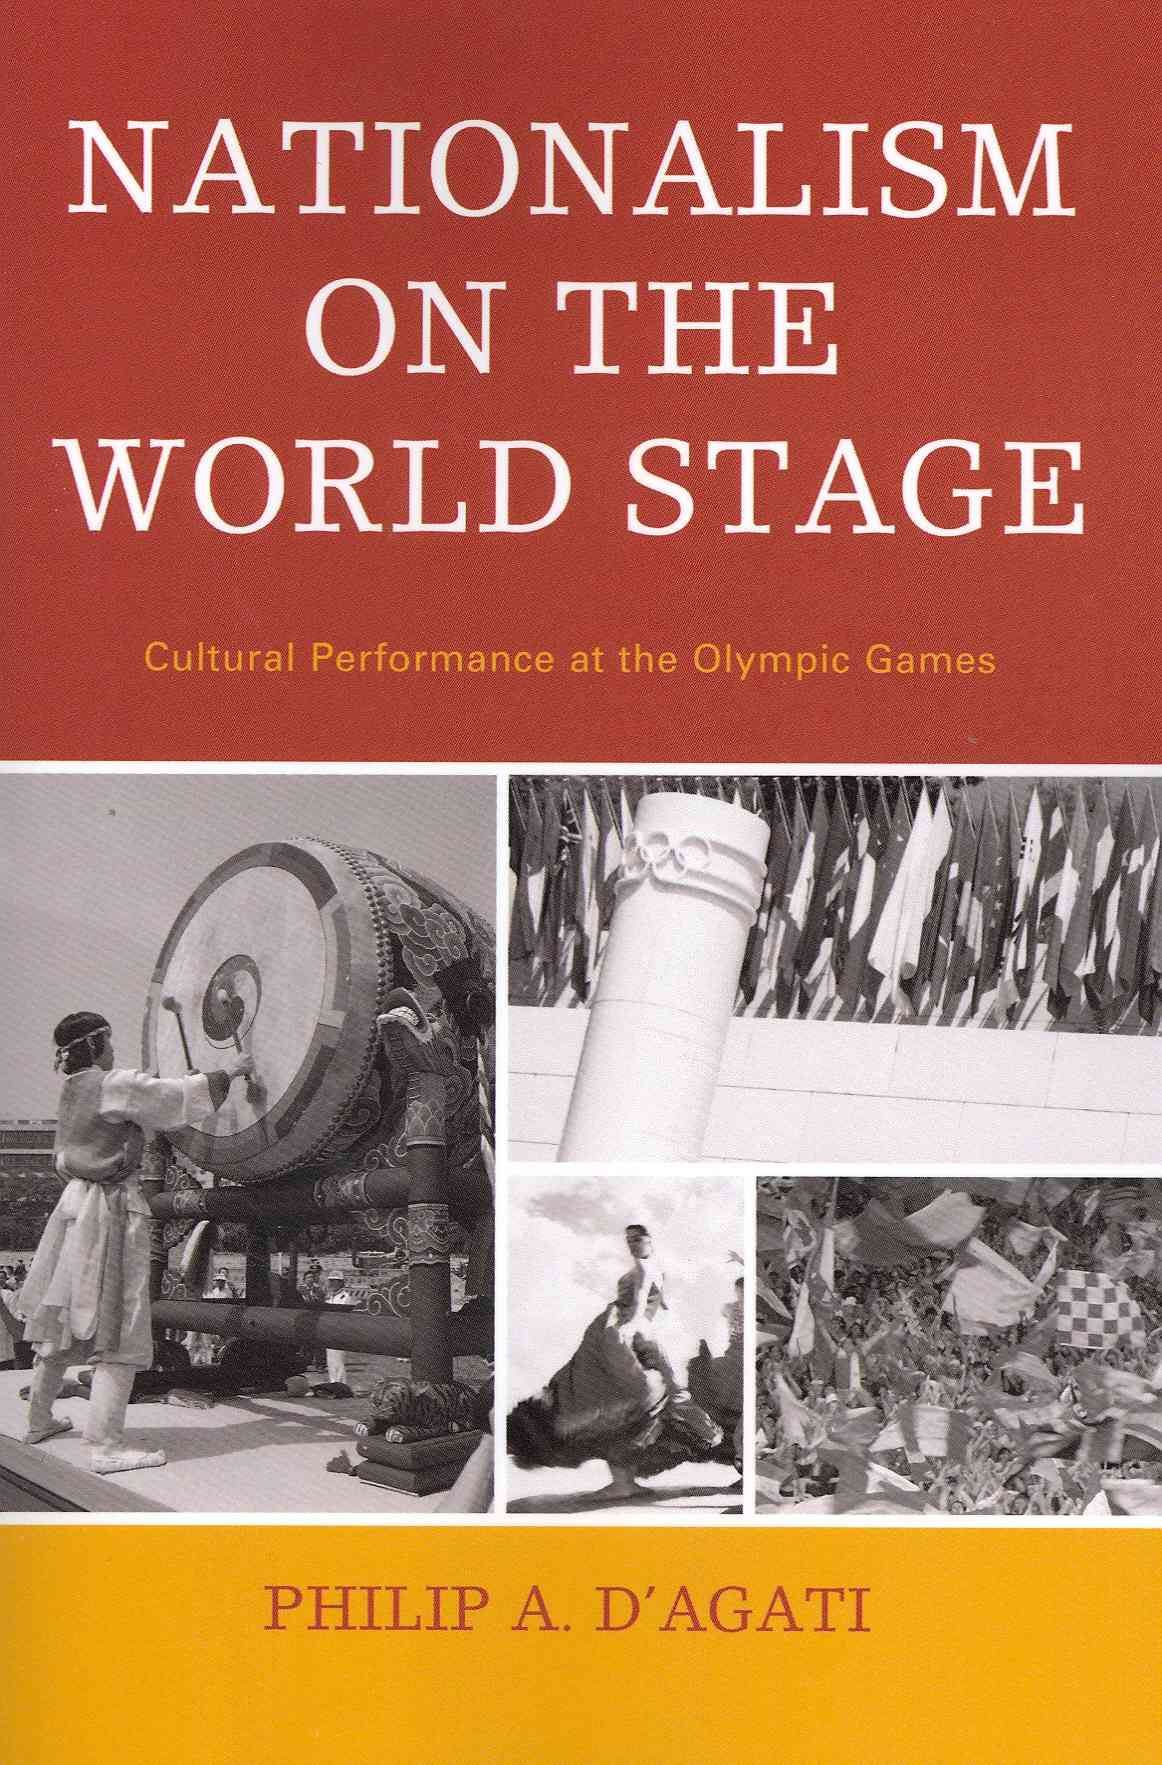 University Press of America Nationalism on the World Stage: Cultural Performance at the Olympic Games (New Edition) by D'Agati, Philip [Paperback] at Sears.com